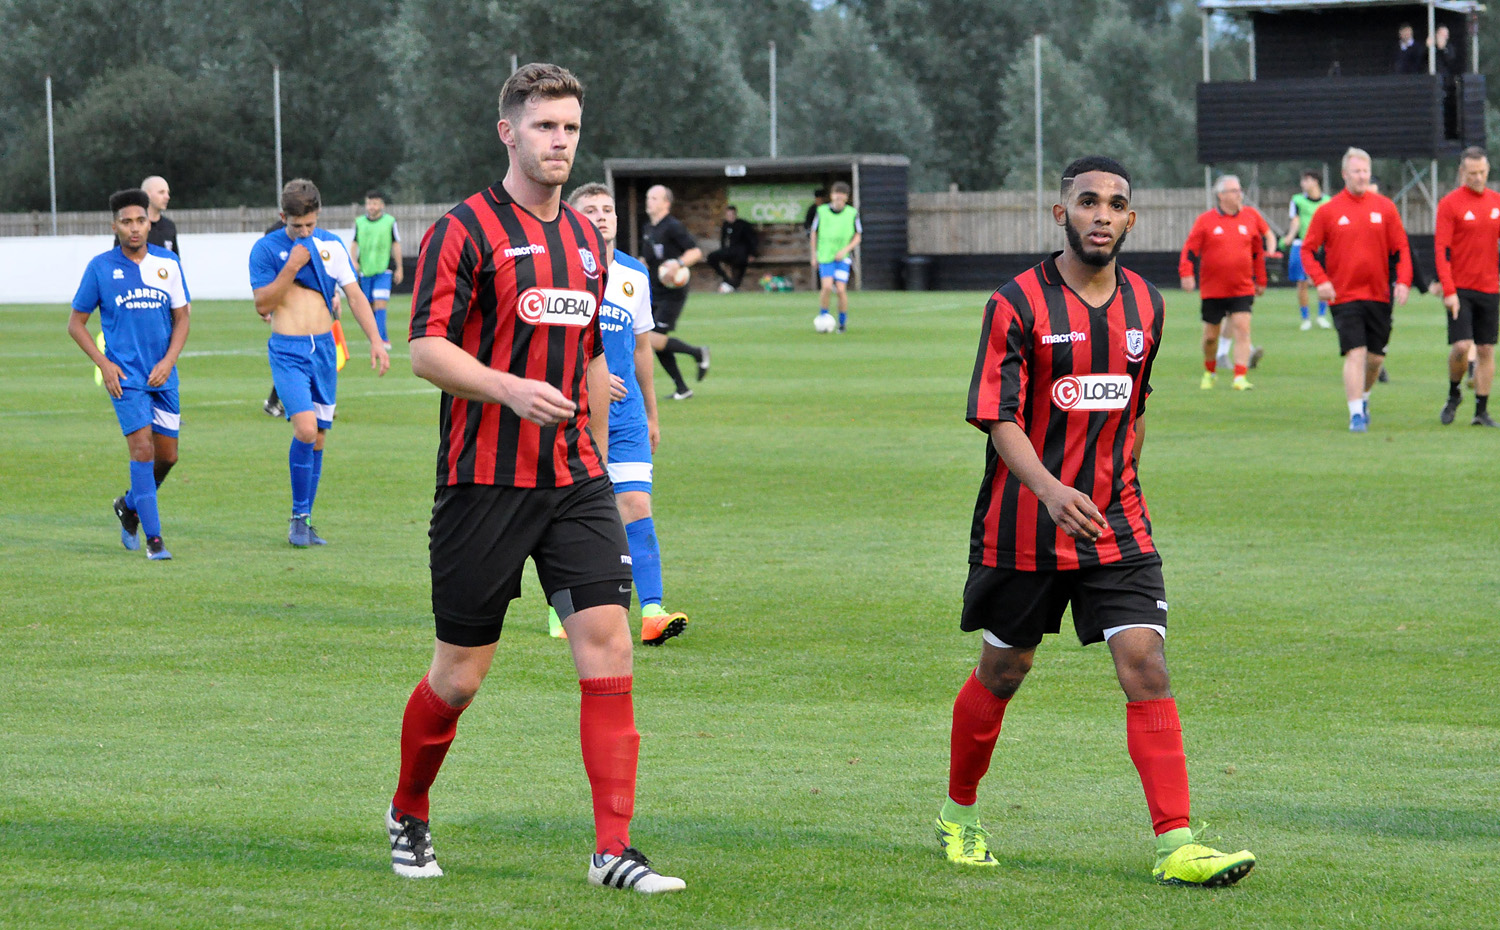 coggeshall-5-1-stanway-rovers-01-08-17-27